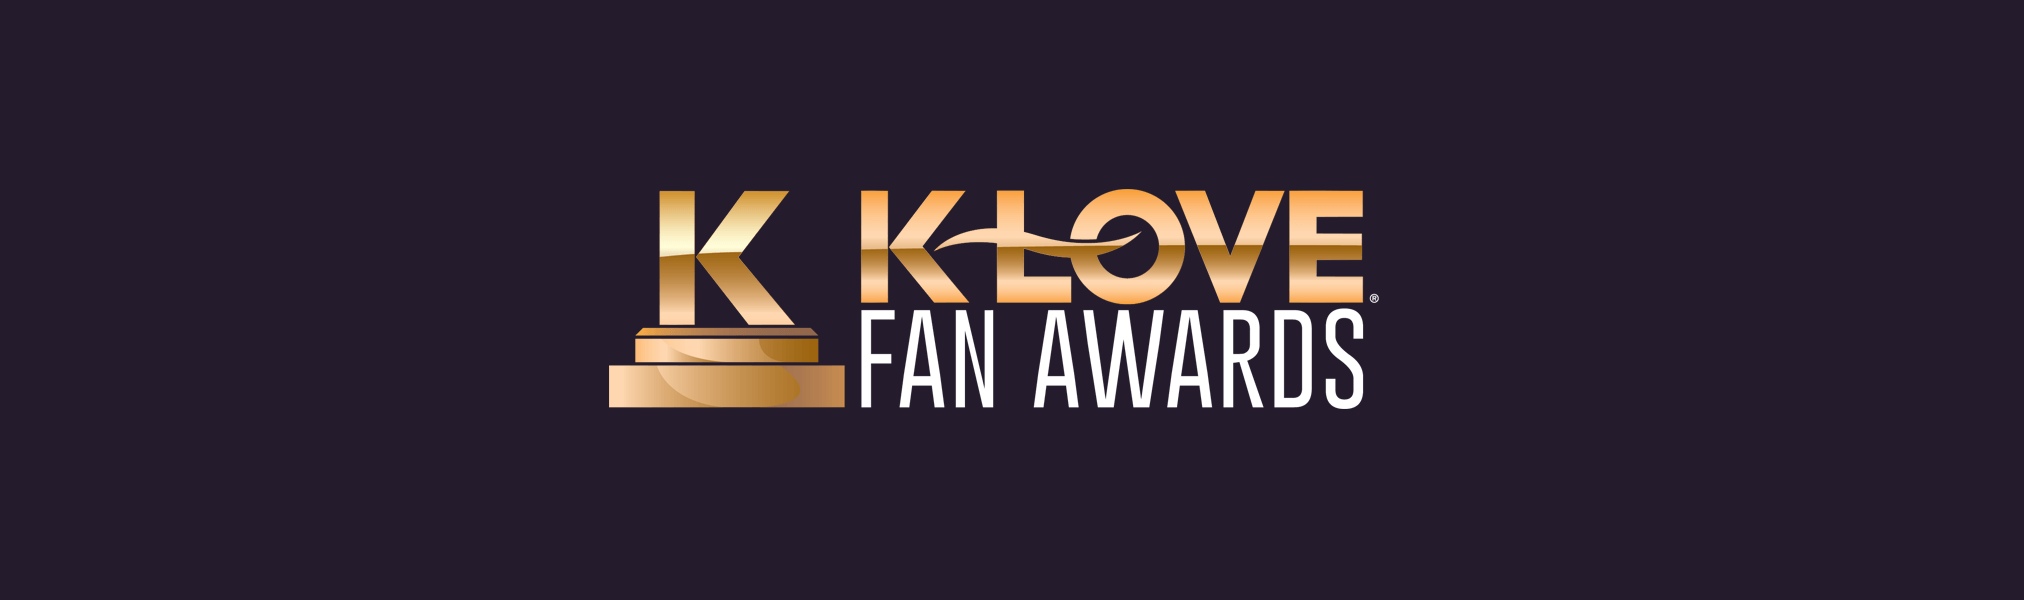 K-LOVE Fan Awards Logo